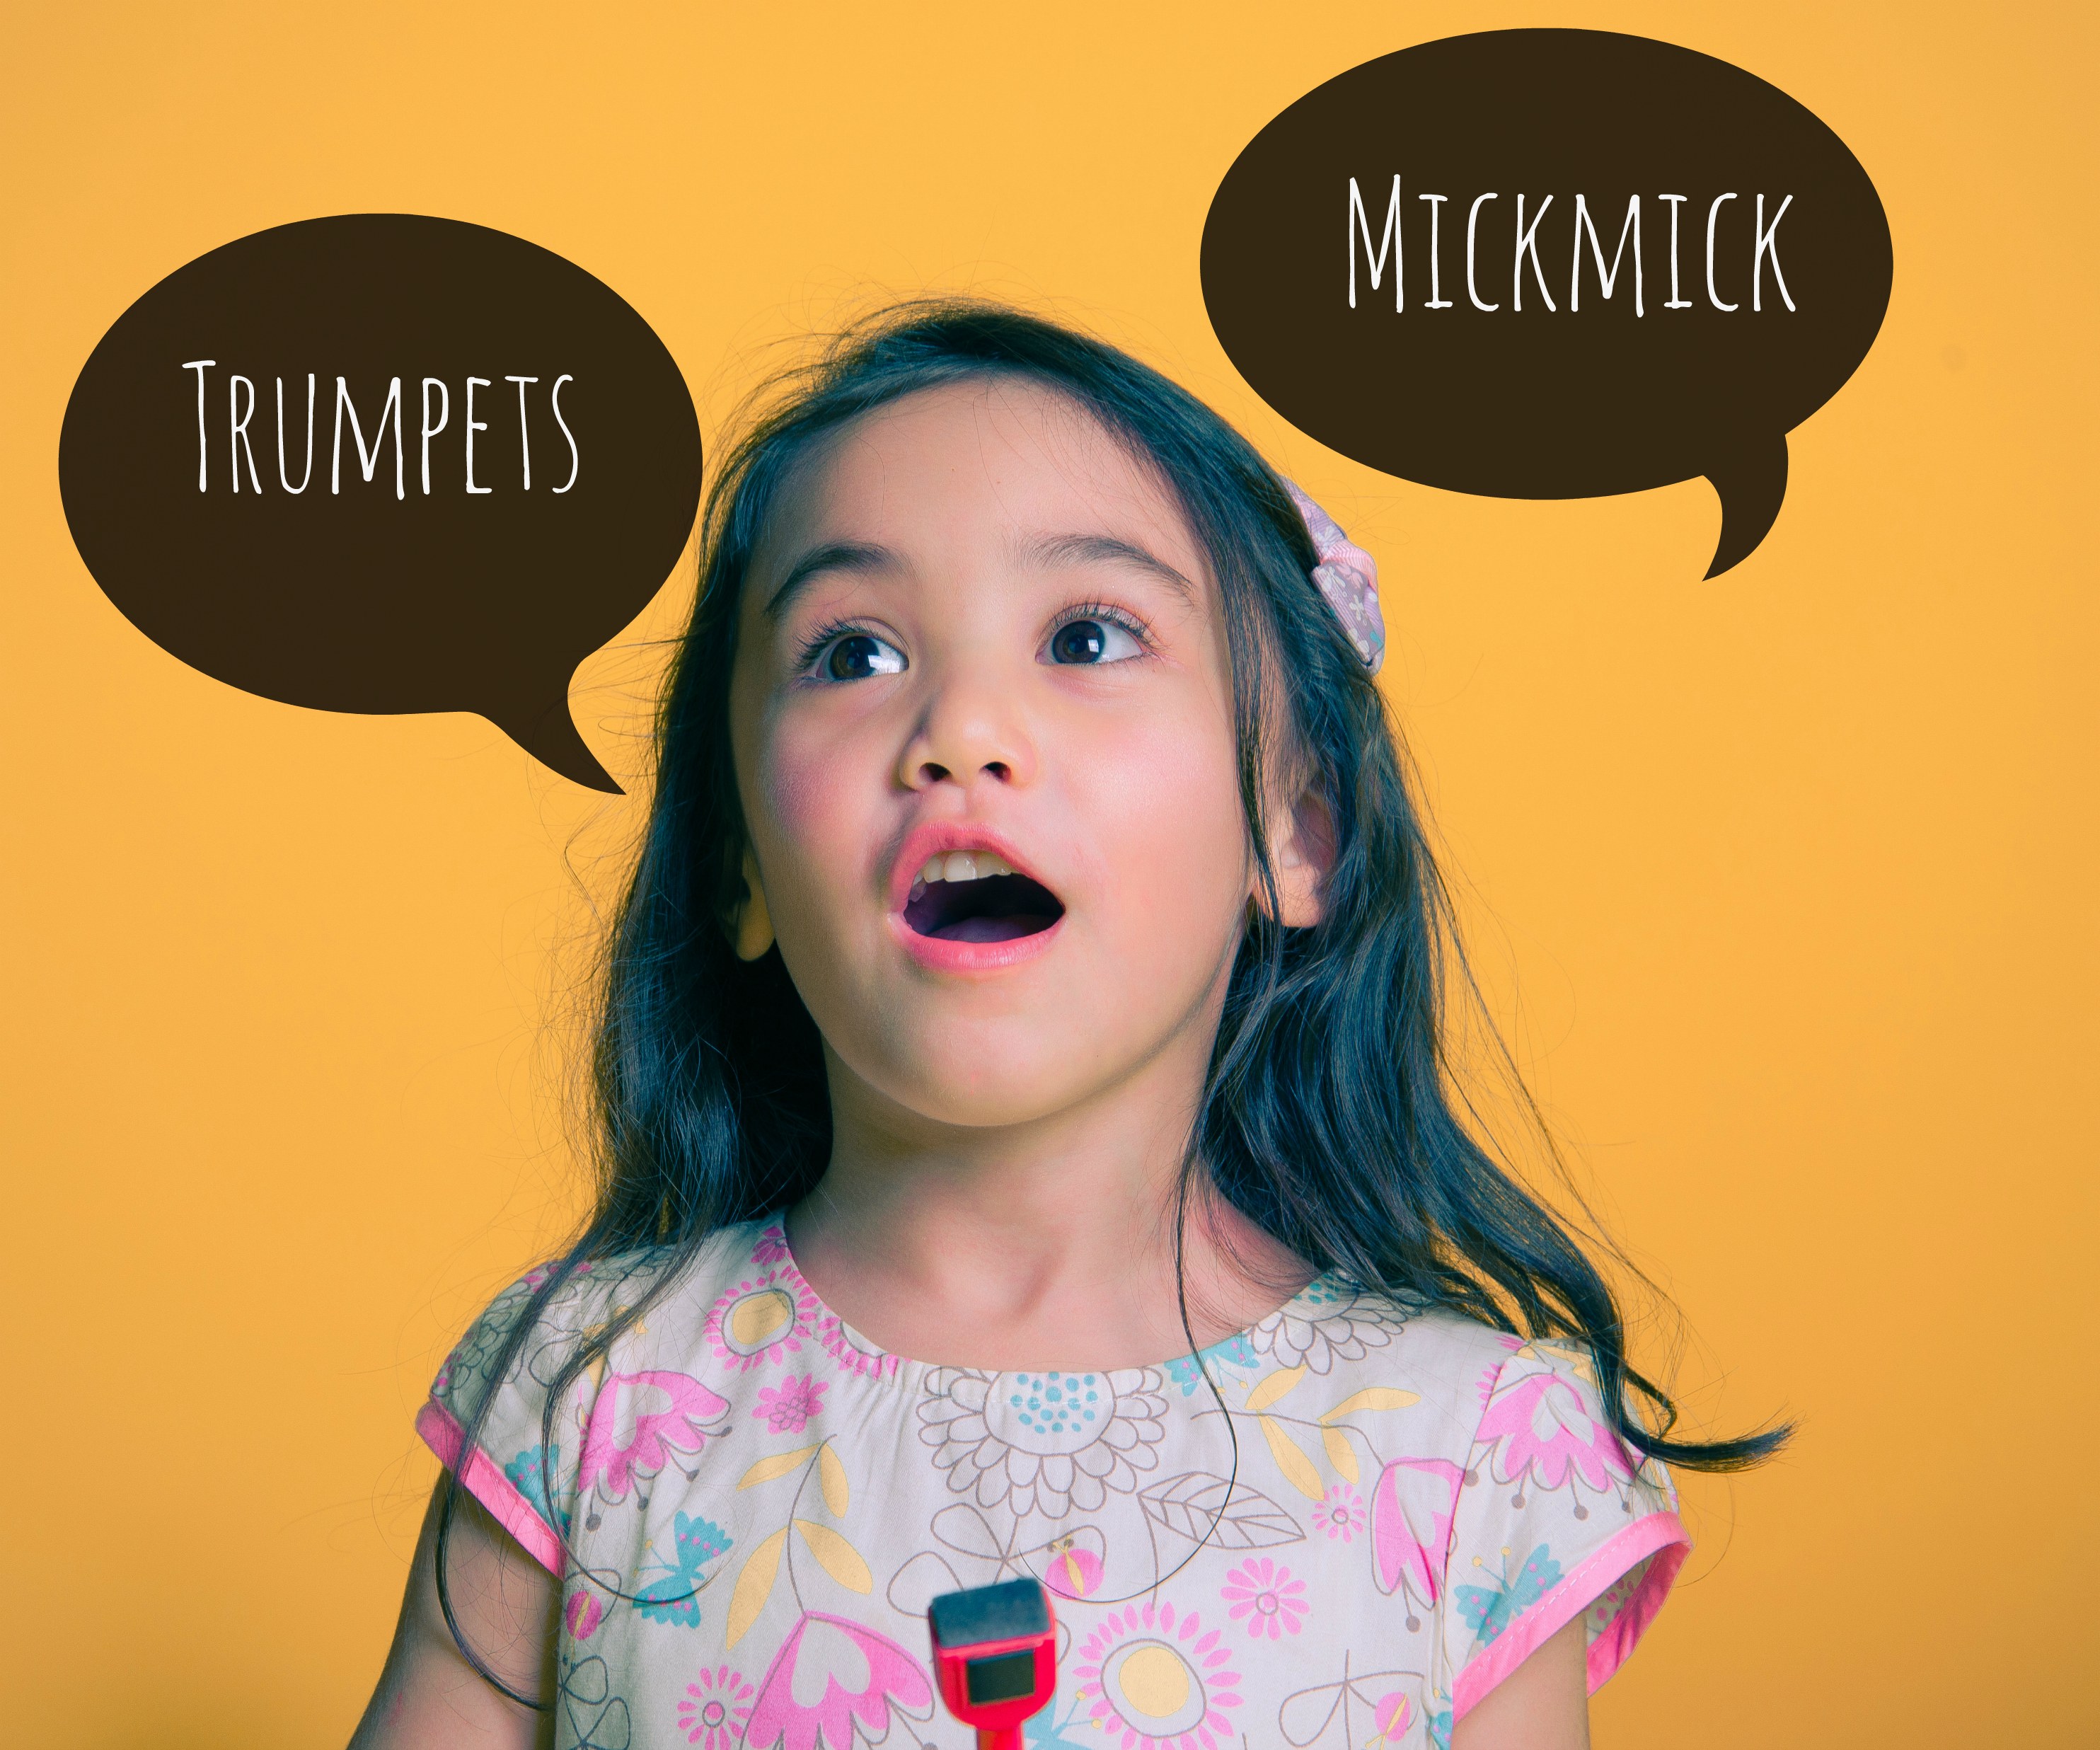 words jumbled by toddlers